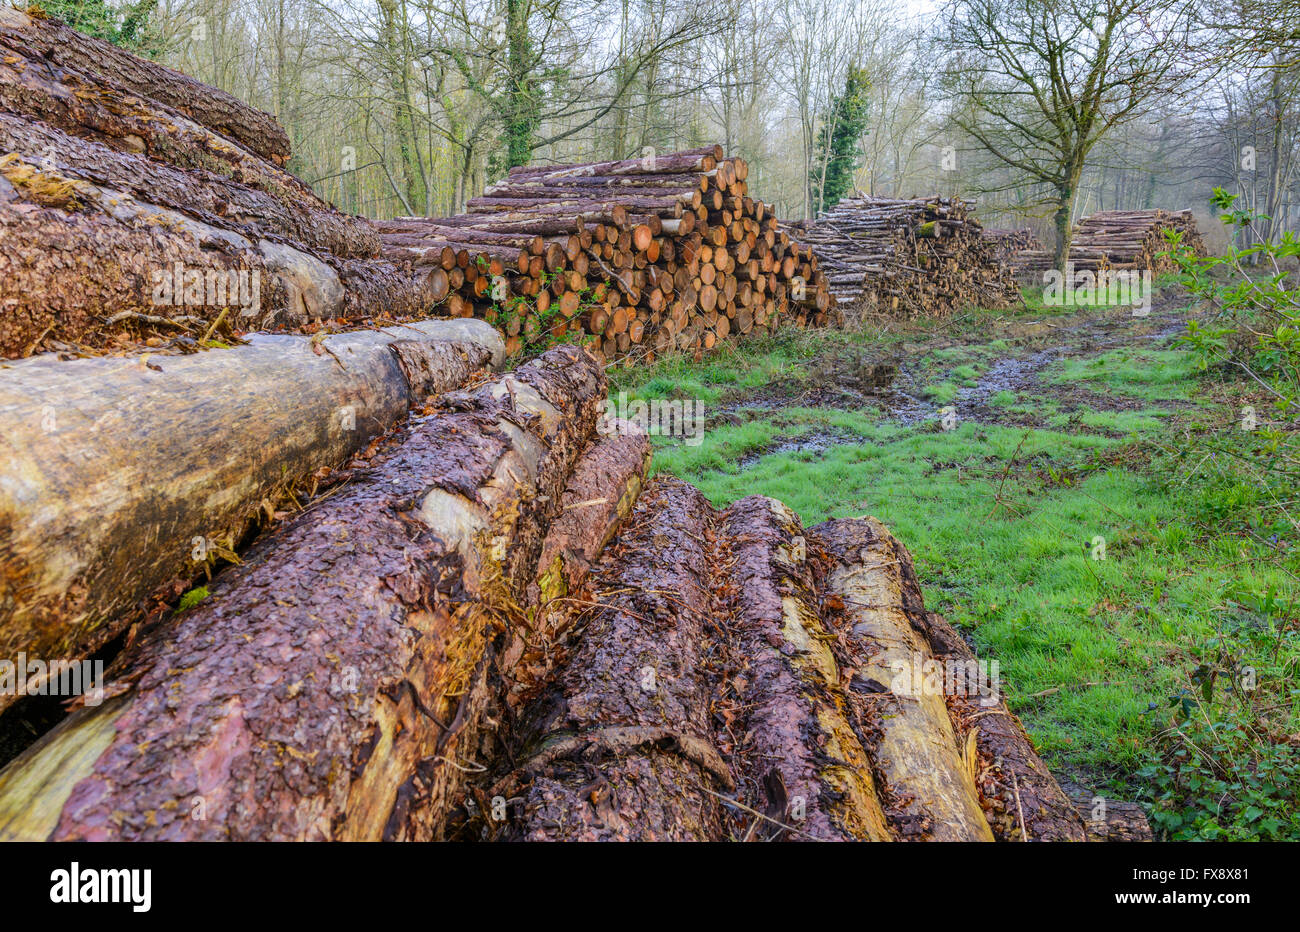 Pile of newly cut logs from trees in a wood in the UK. - Stock Image